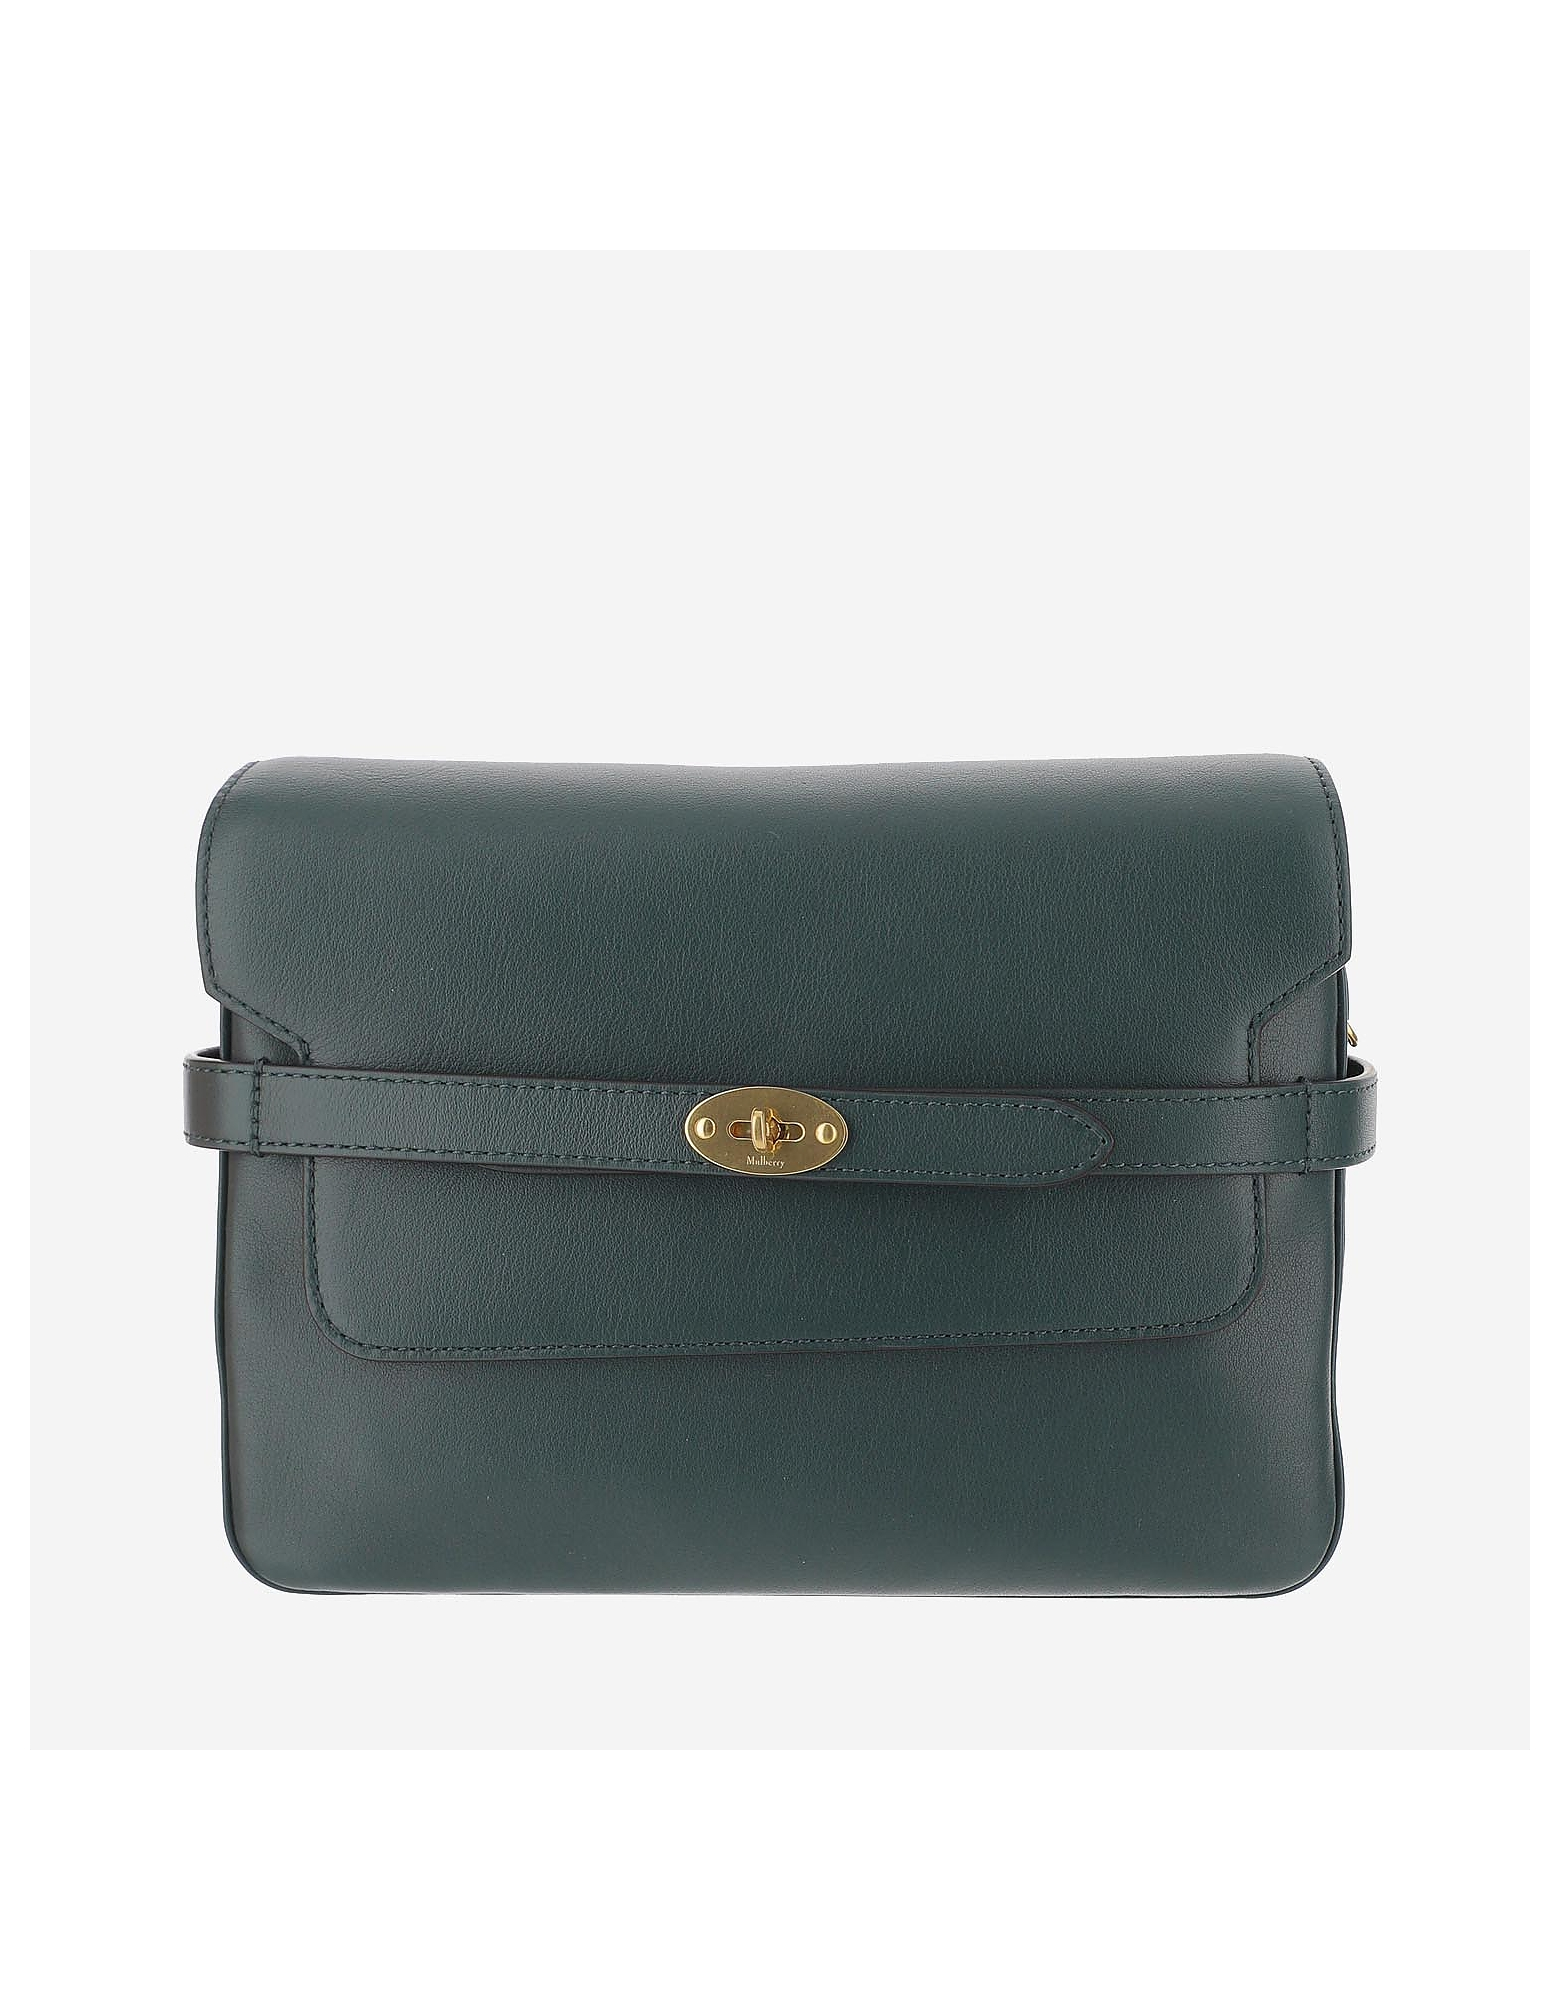 Mulberry BLUE AND GREEN SHOULDER